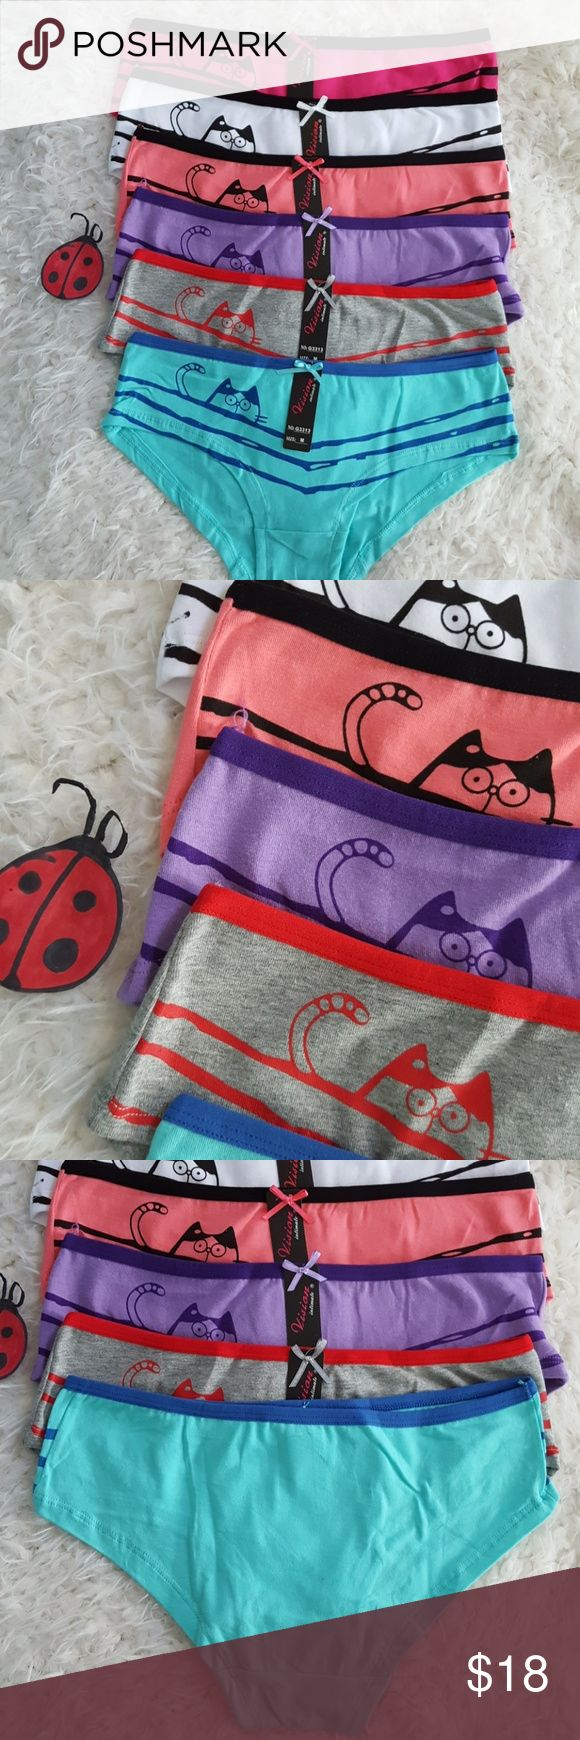 6- Kitty Cat bikini Hipster panties New Super Cute peek a boo  kitty  Cat panties. Soft and comfortable.  95% cotton  5% spandex  Other colors available Intimates & Sleepwear Panties